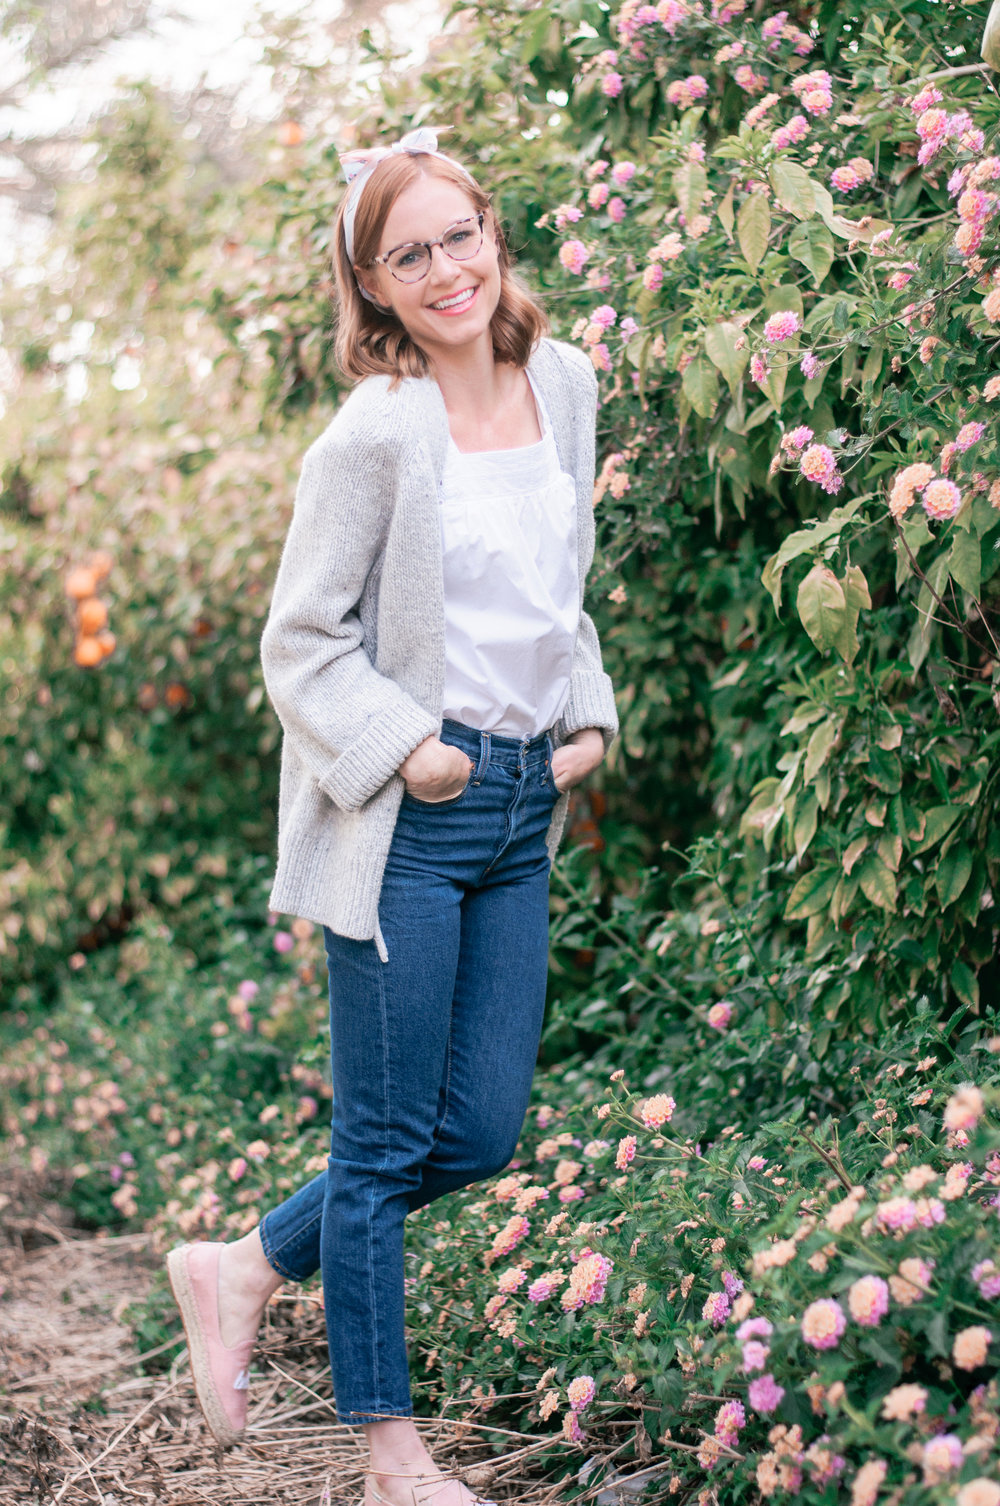 Women's Casual Spring Outfit with Jeans and Long Layers